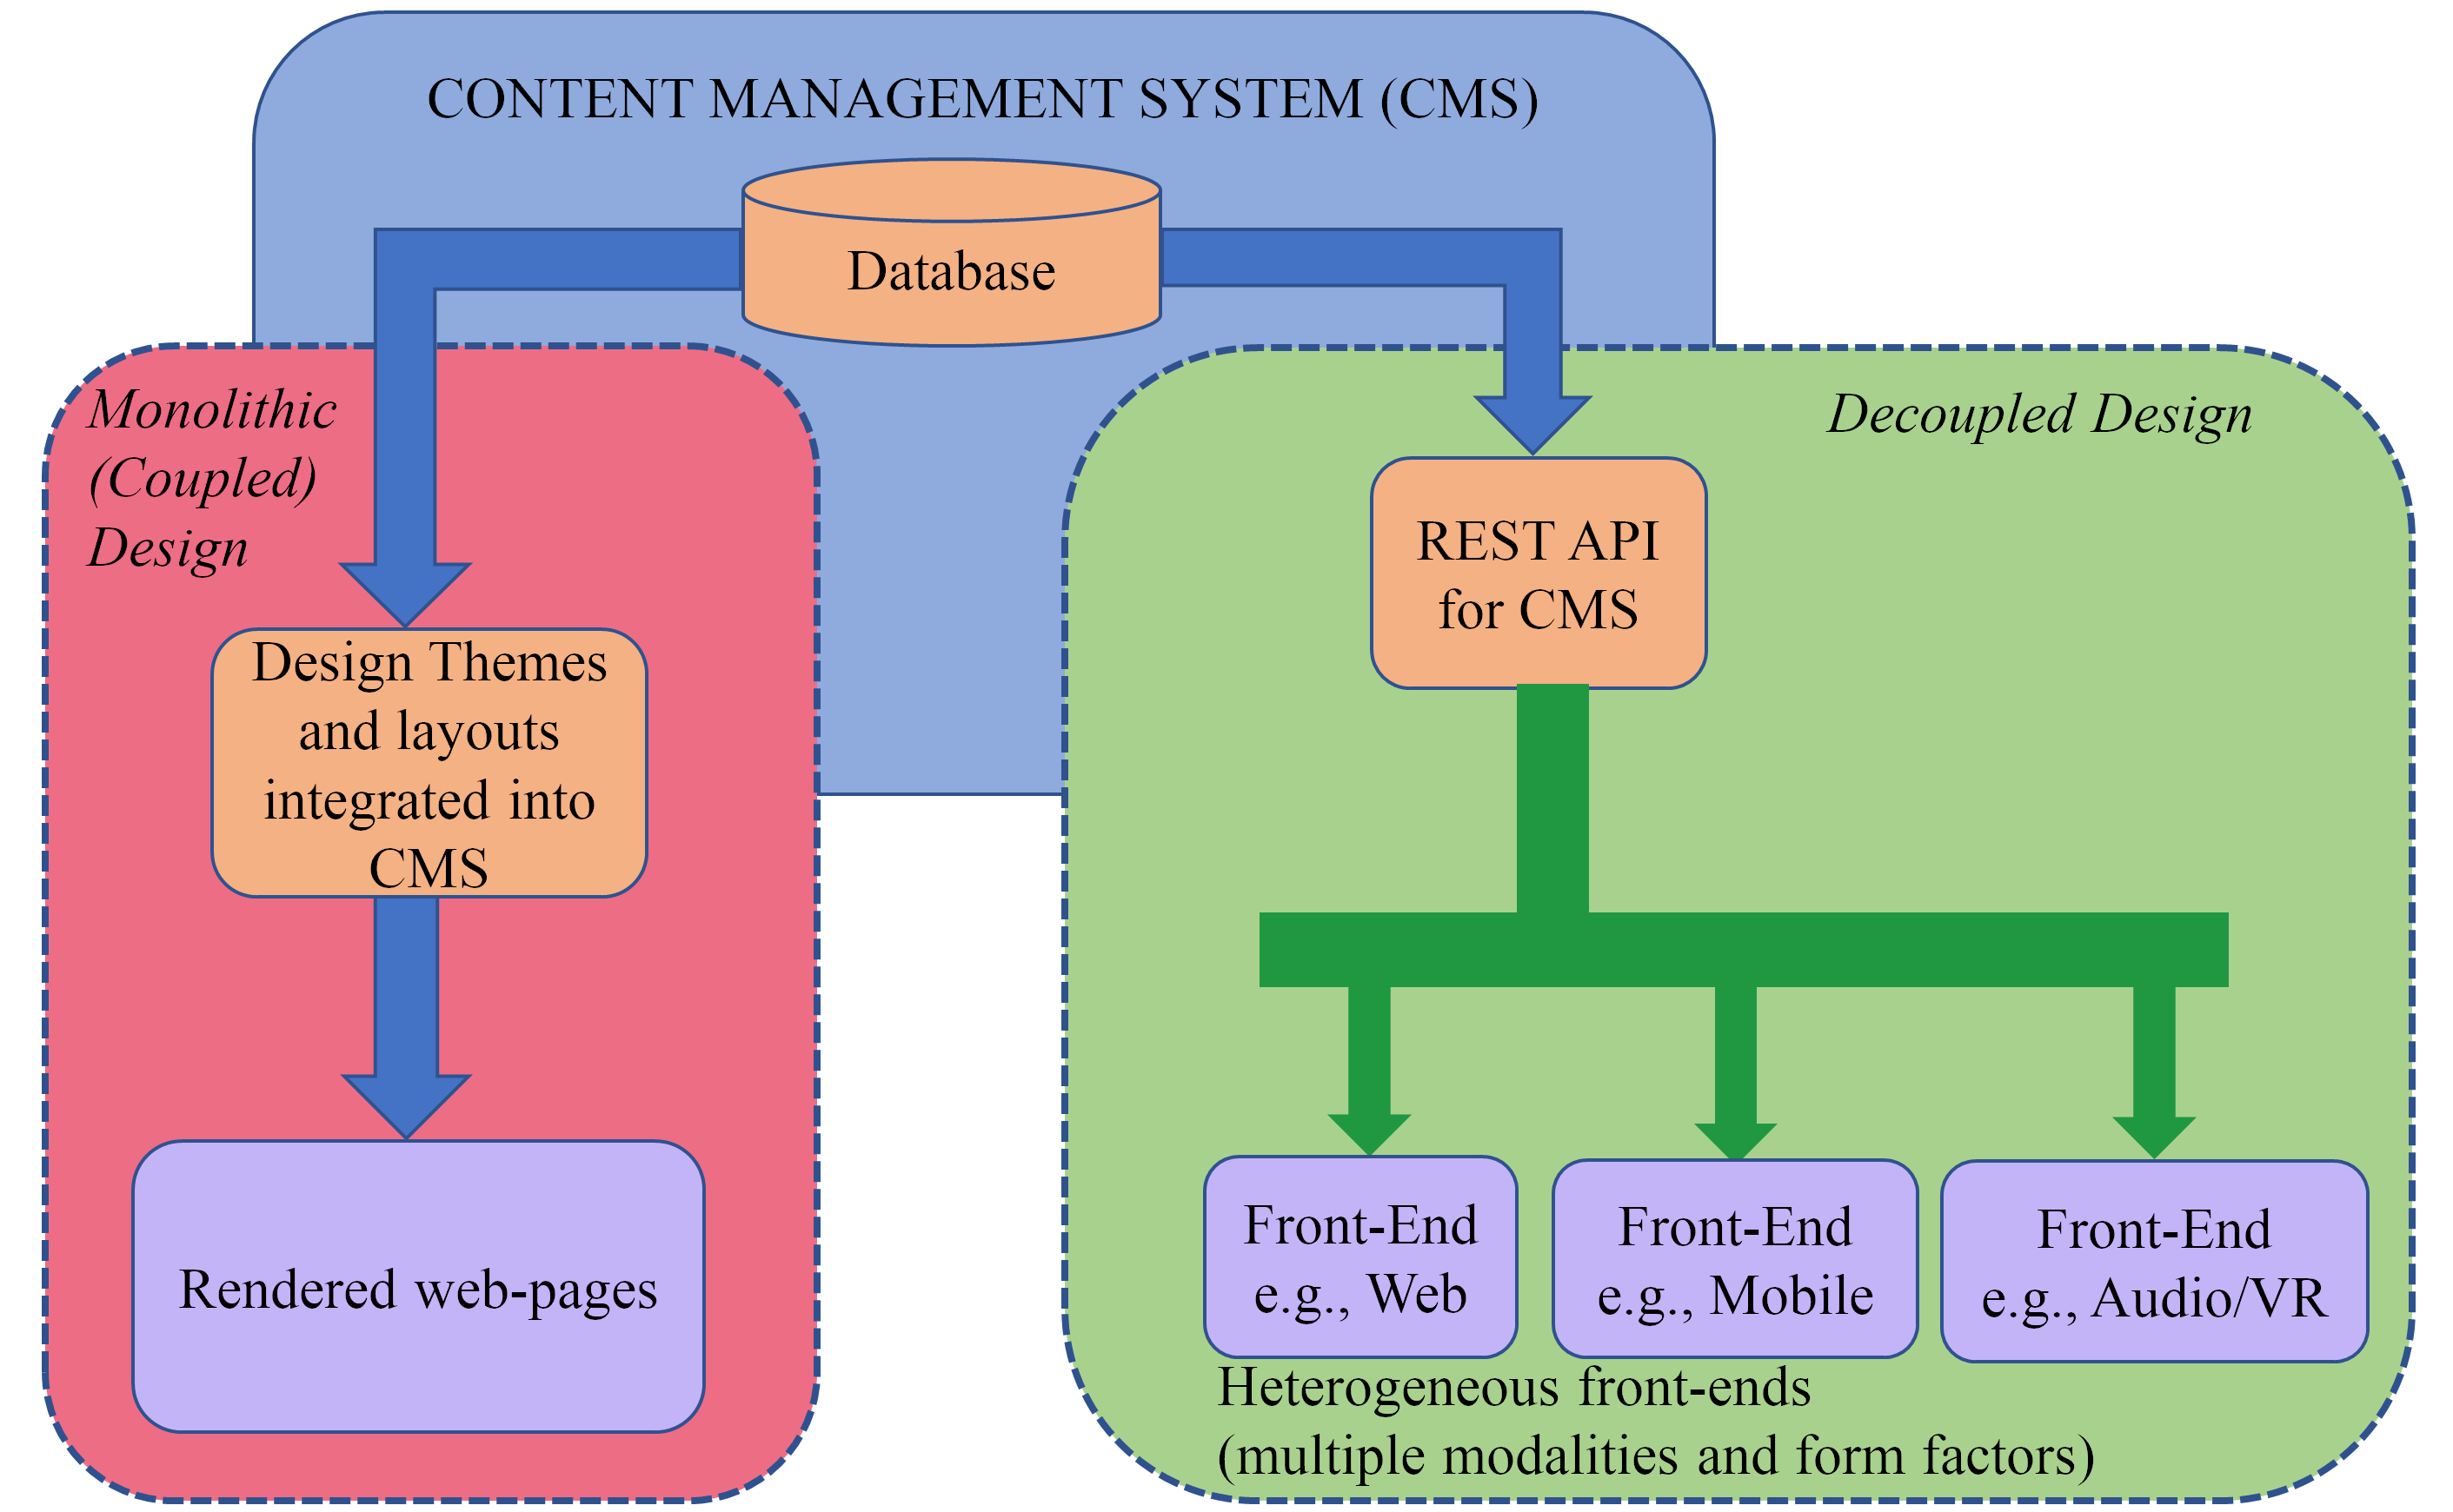 Coupled and decoupled architectures. Decoupled design facilitates development of multiple front-ends that pull from the same back-end CMS.